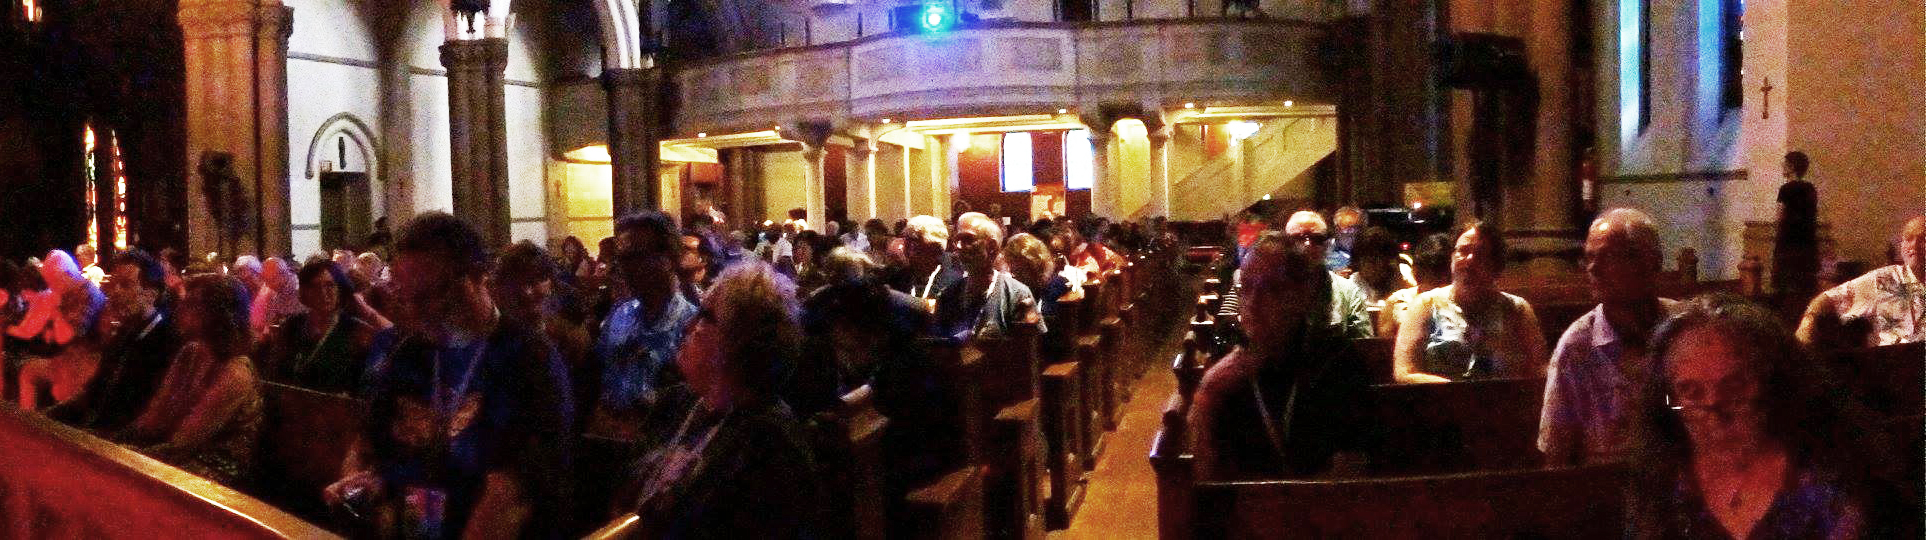 audience at christ church